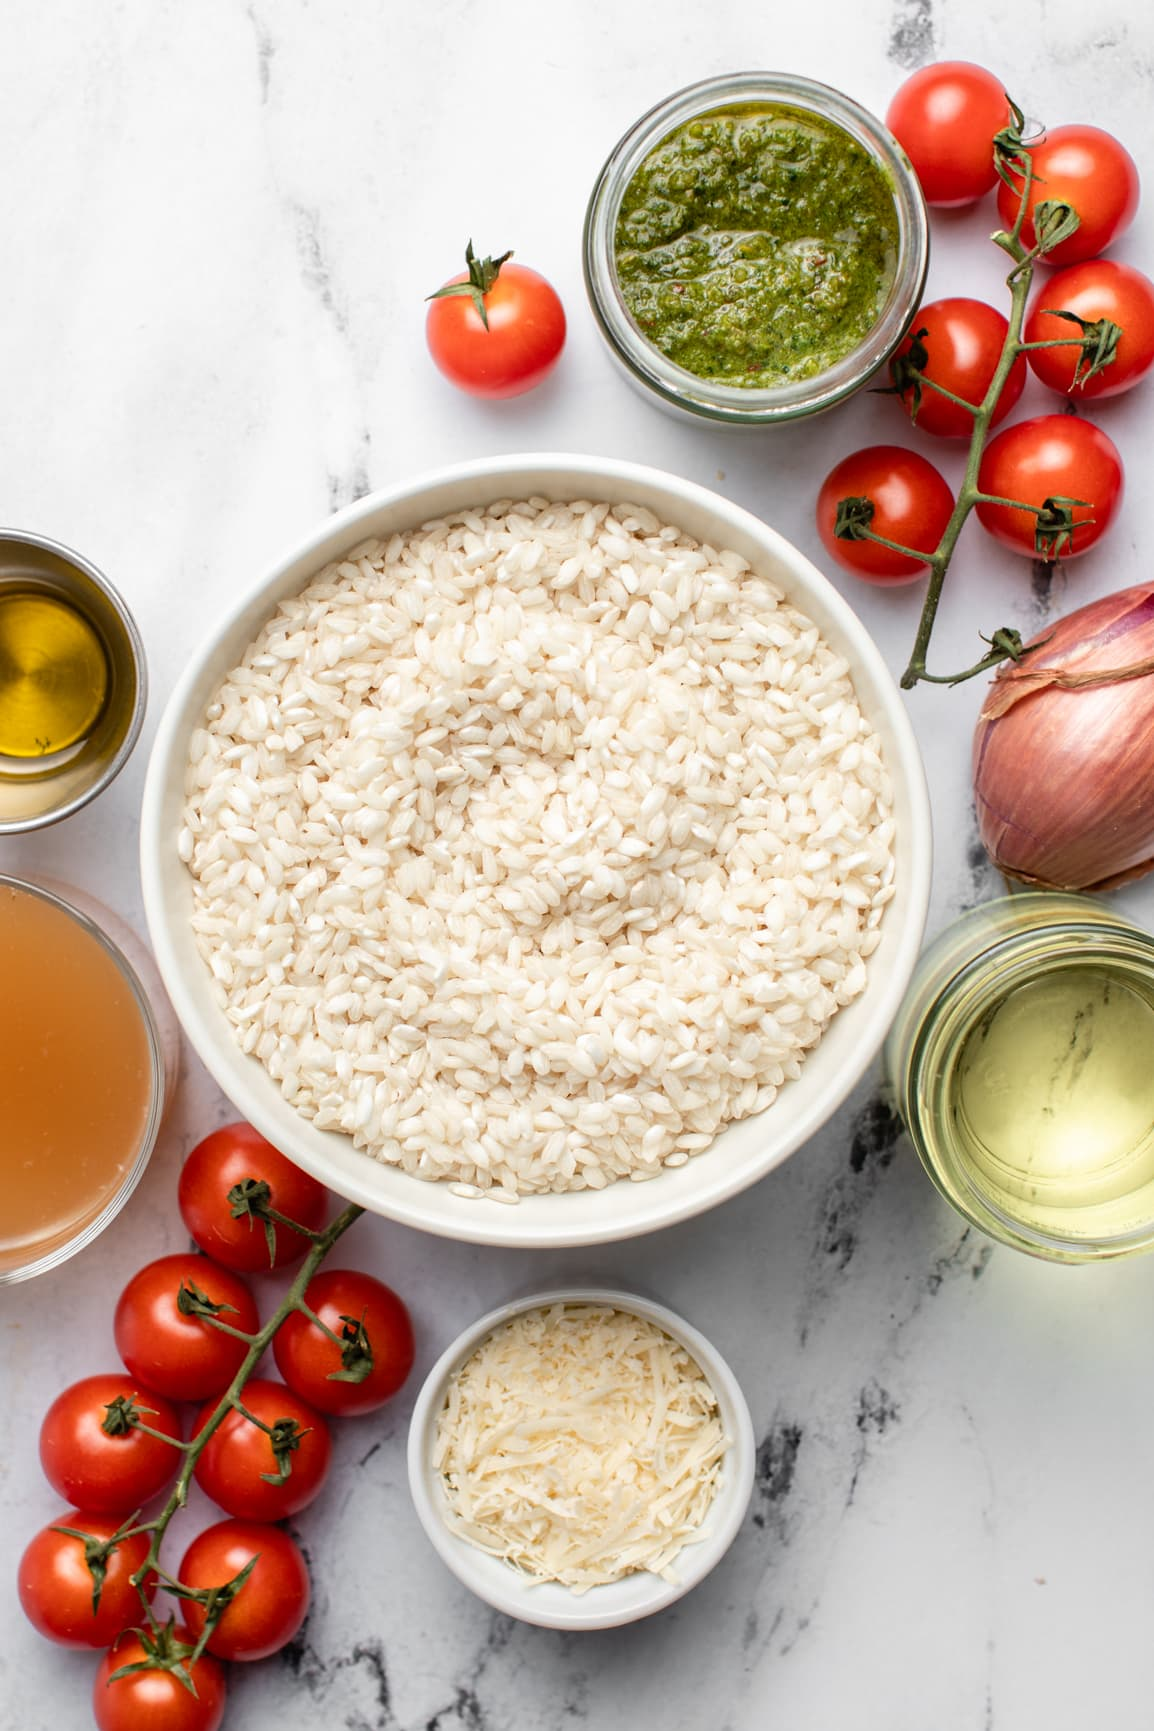 ingredients for risotto in small white bowls on marble countertop